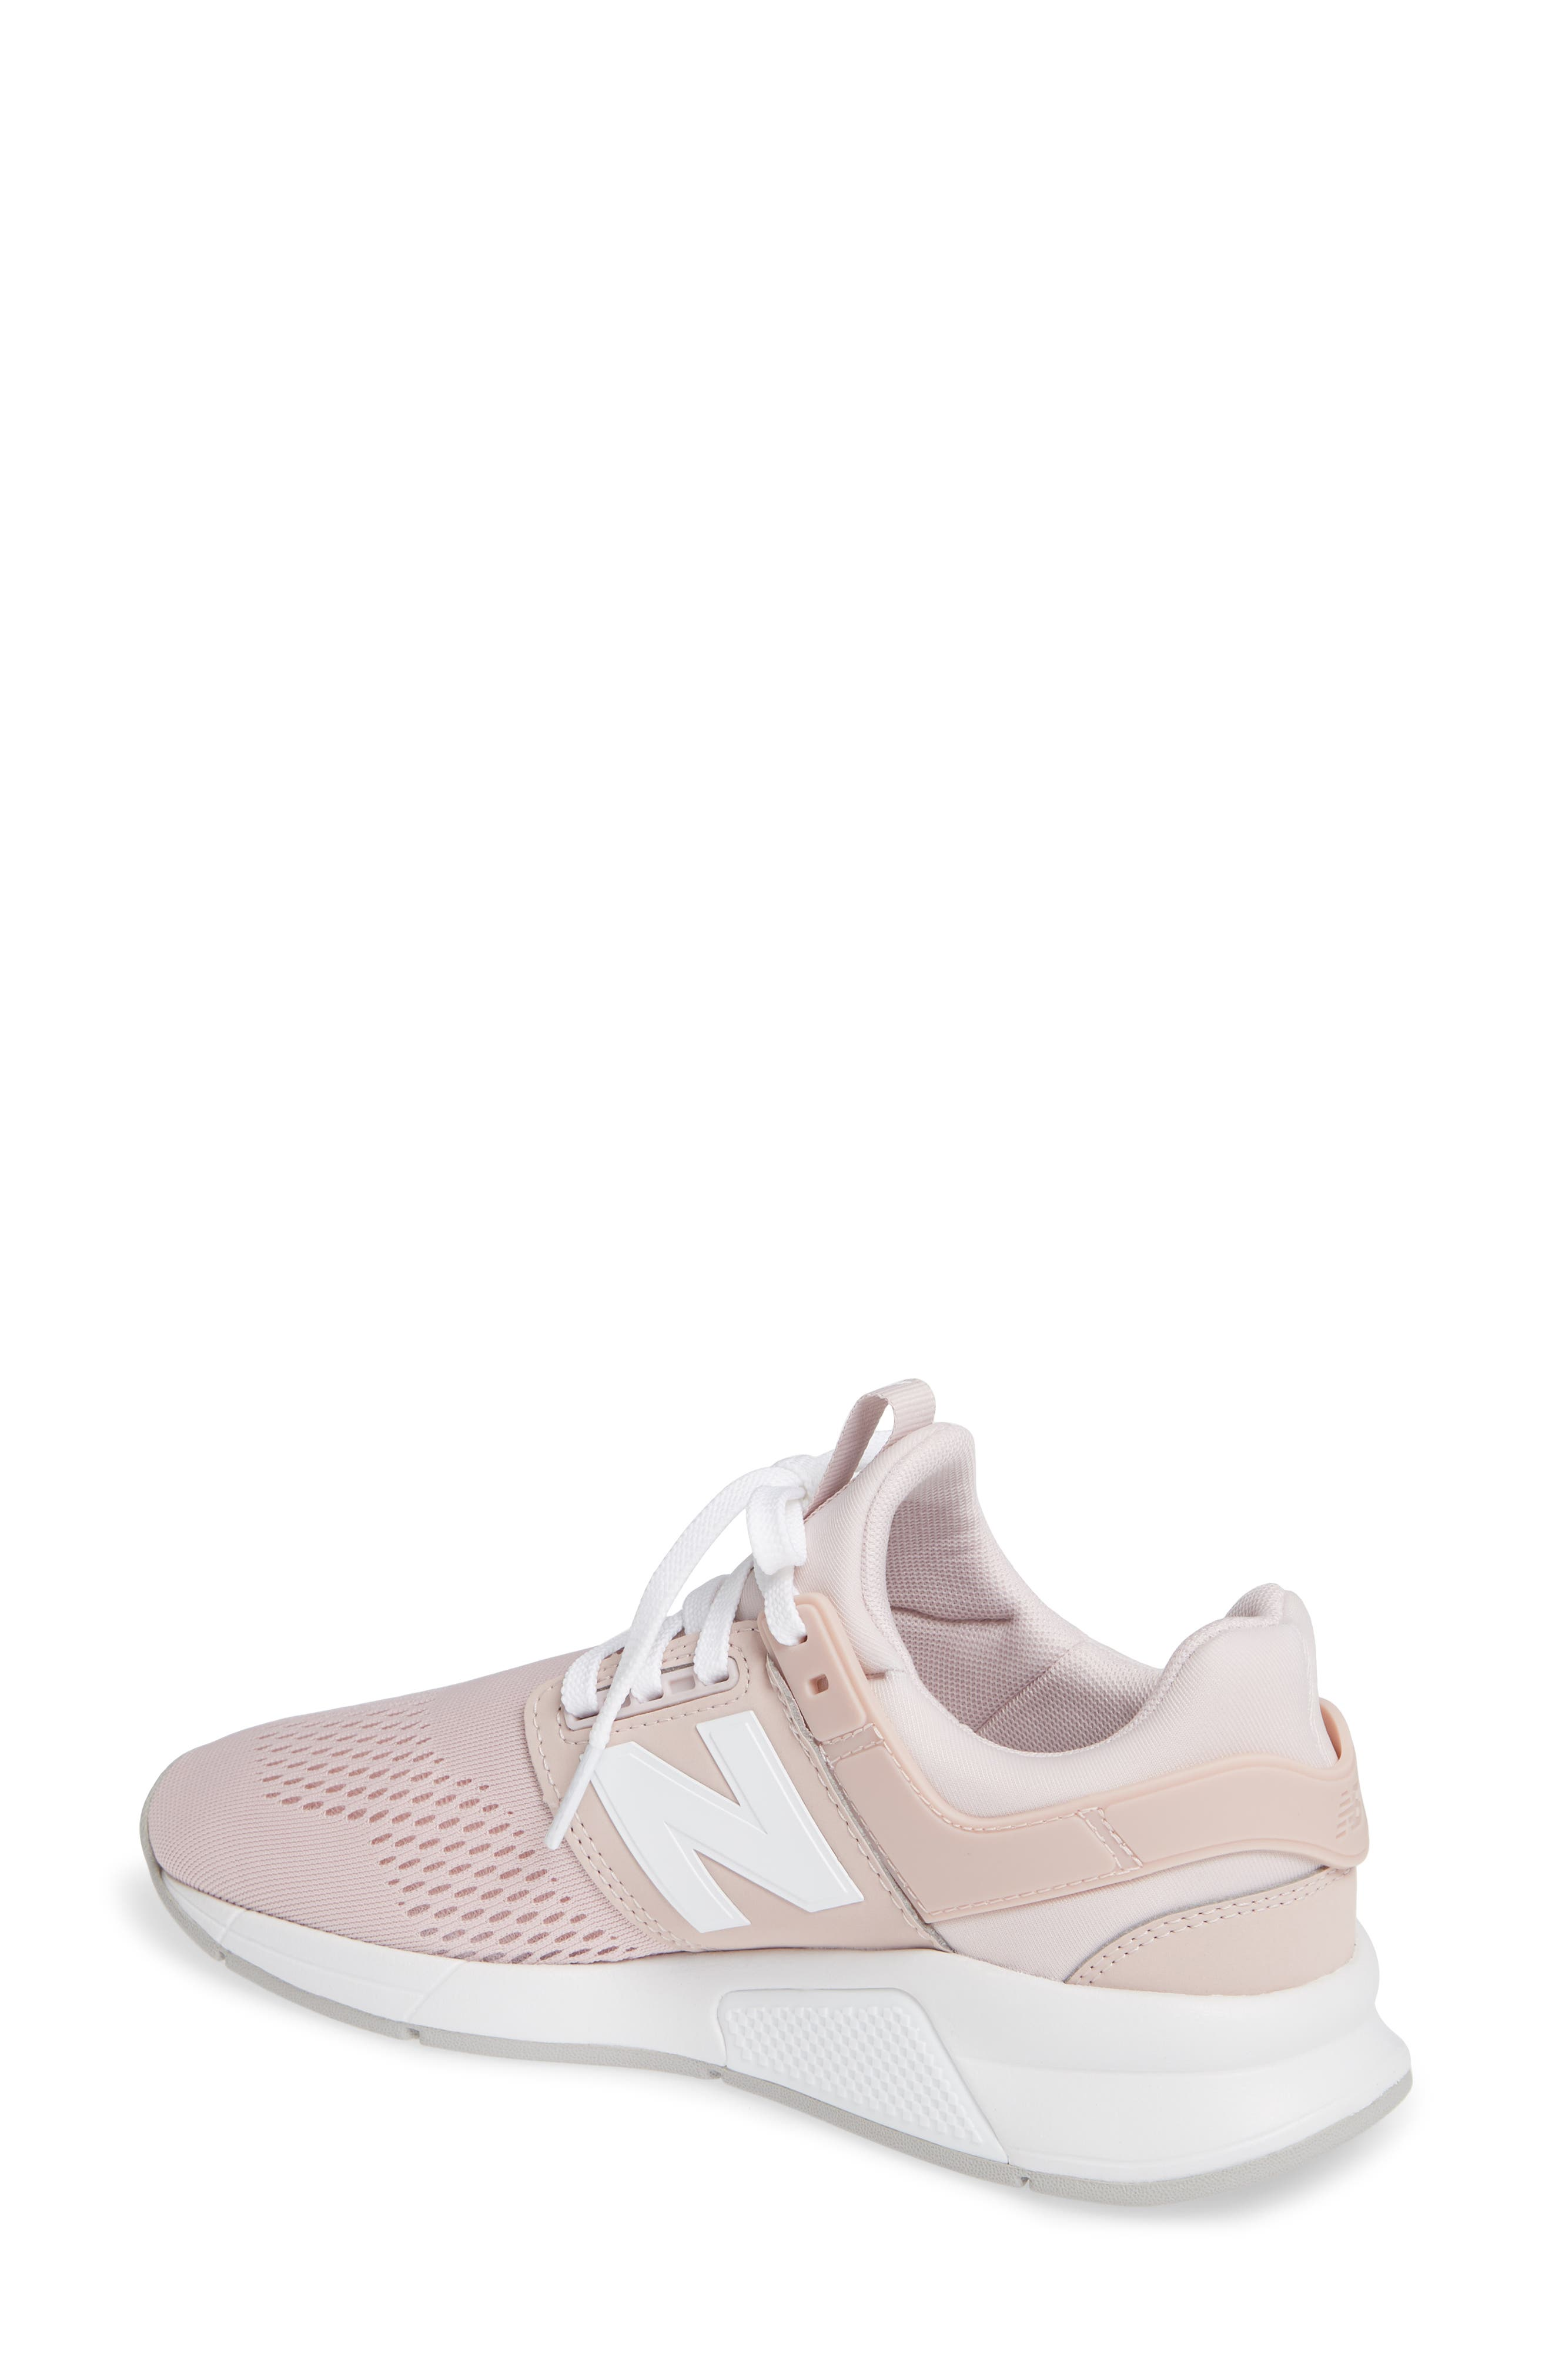 247 Sneaker,                             Alternate thumbnail 2, color,                             CONCH SHELL